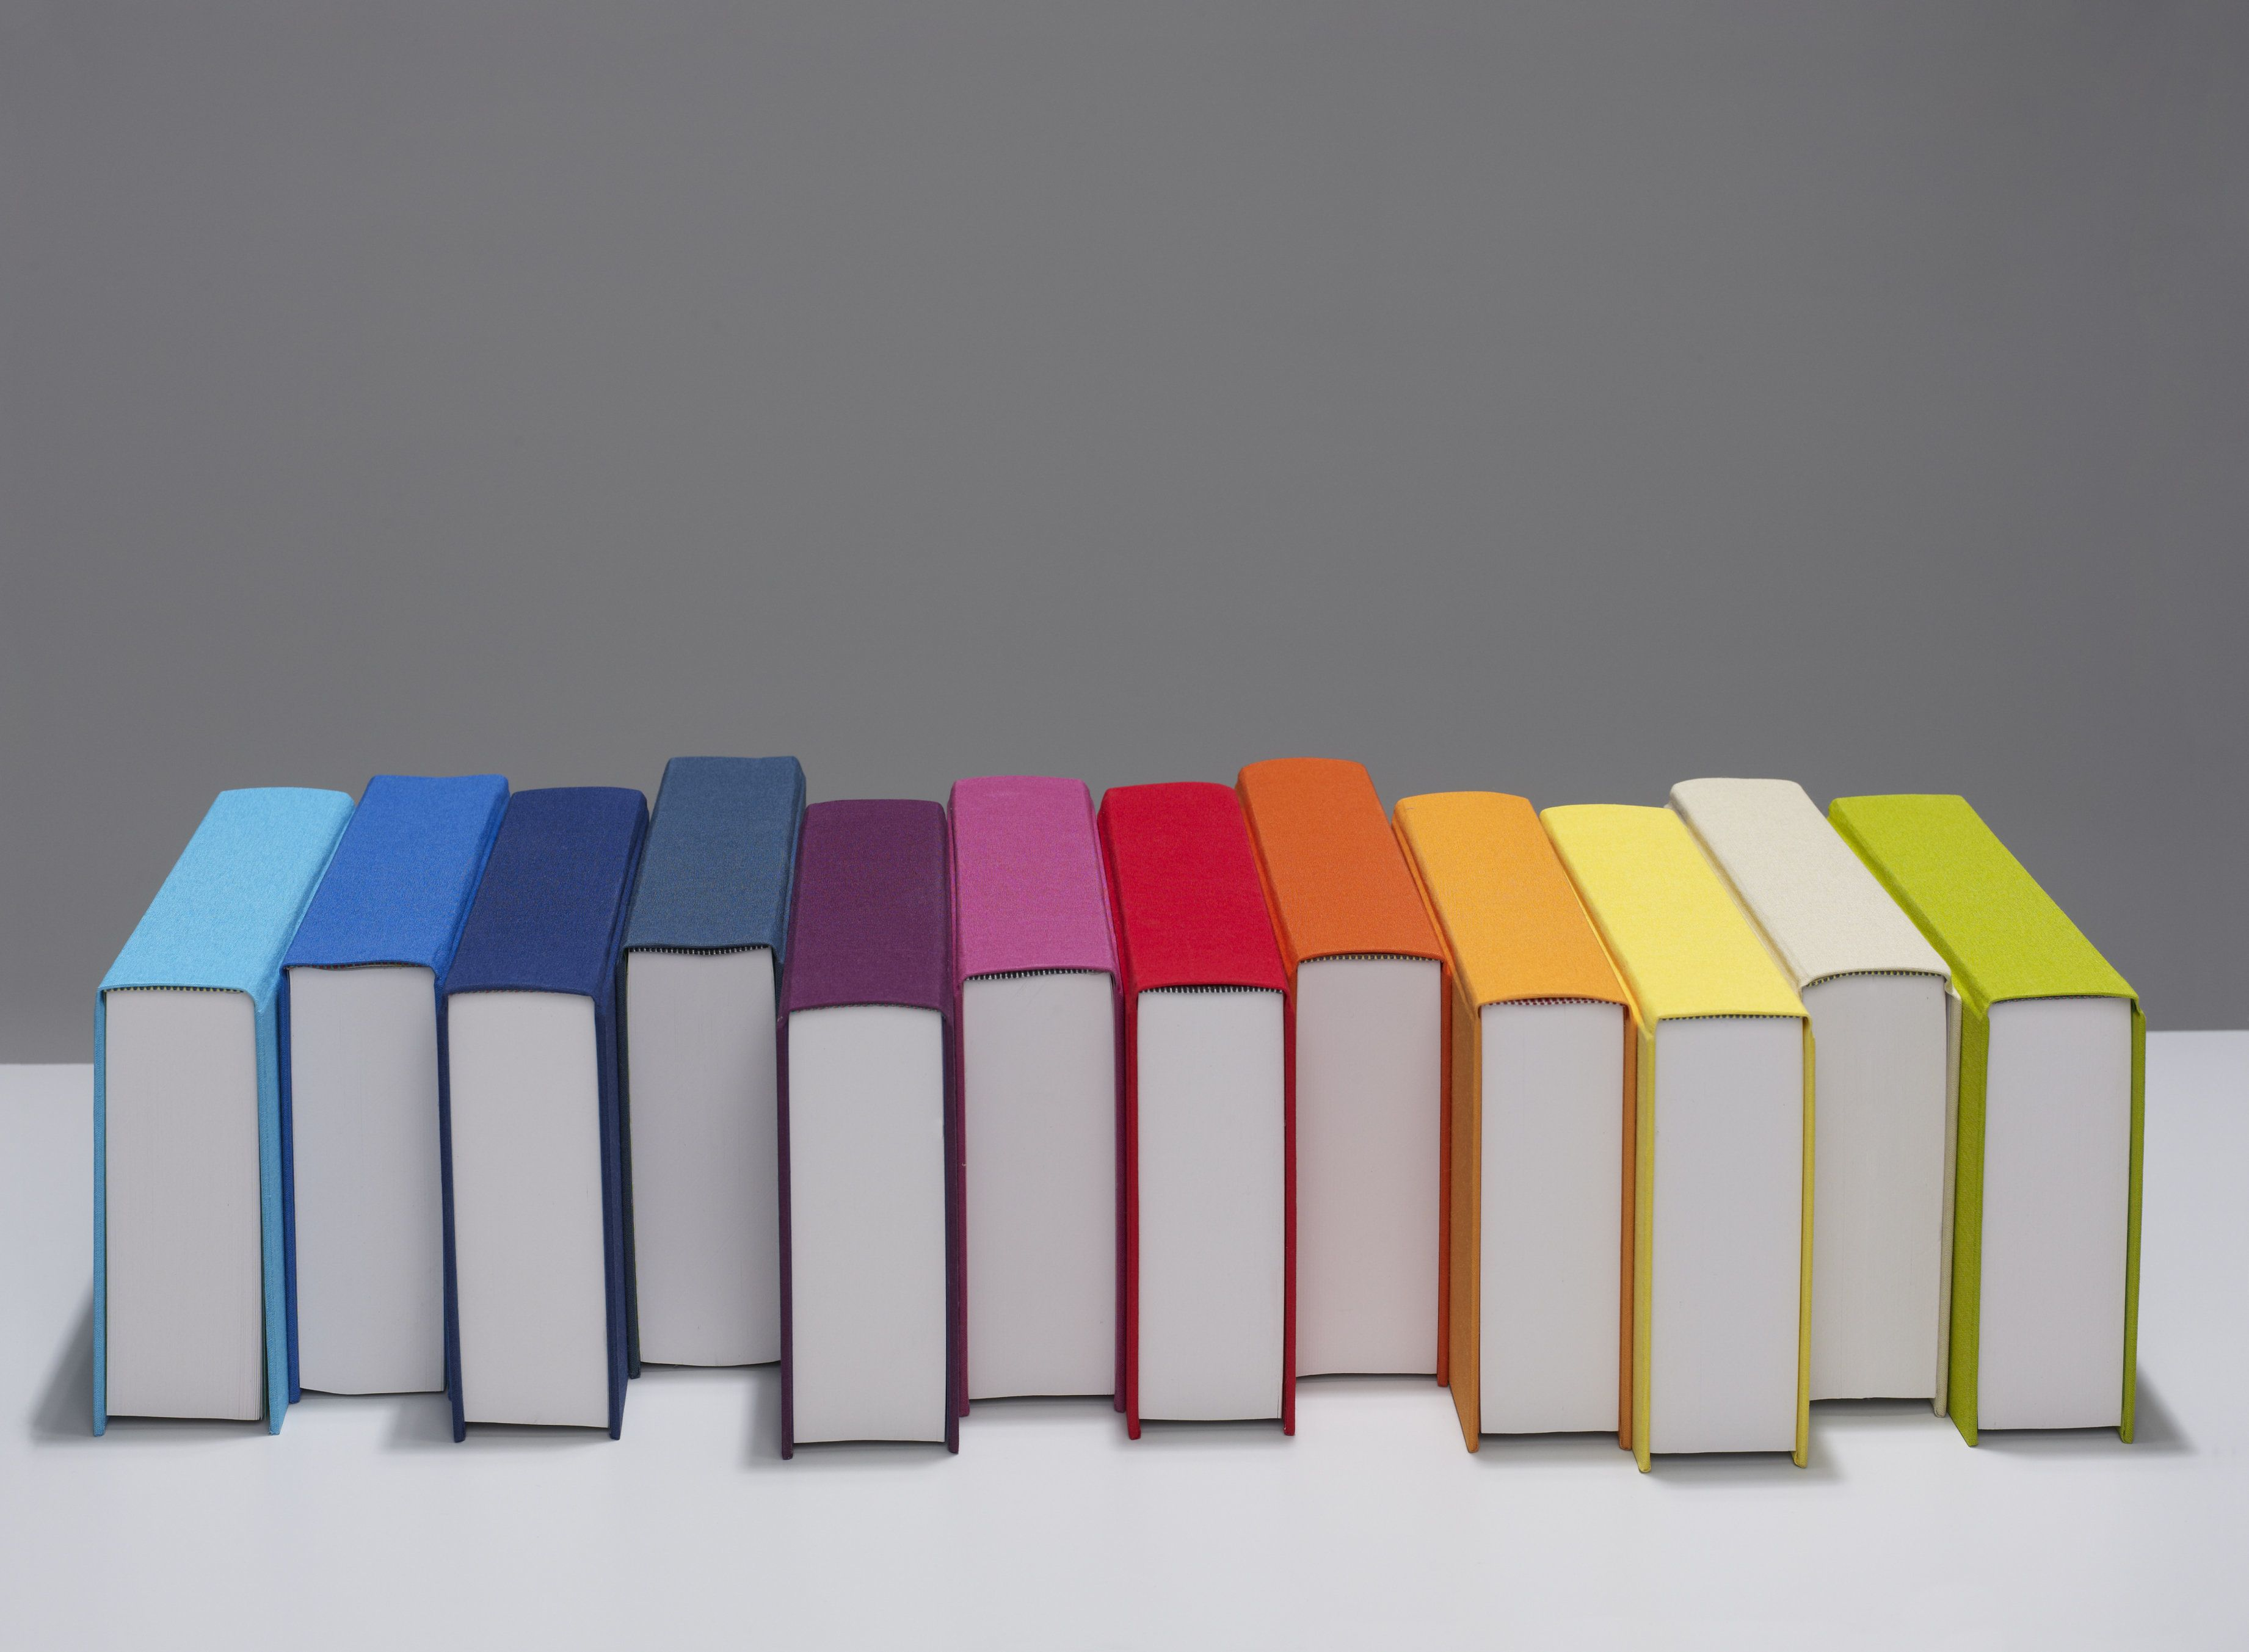 coloured books lined up in rainbow spectrum on desk